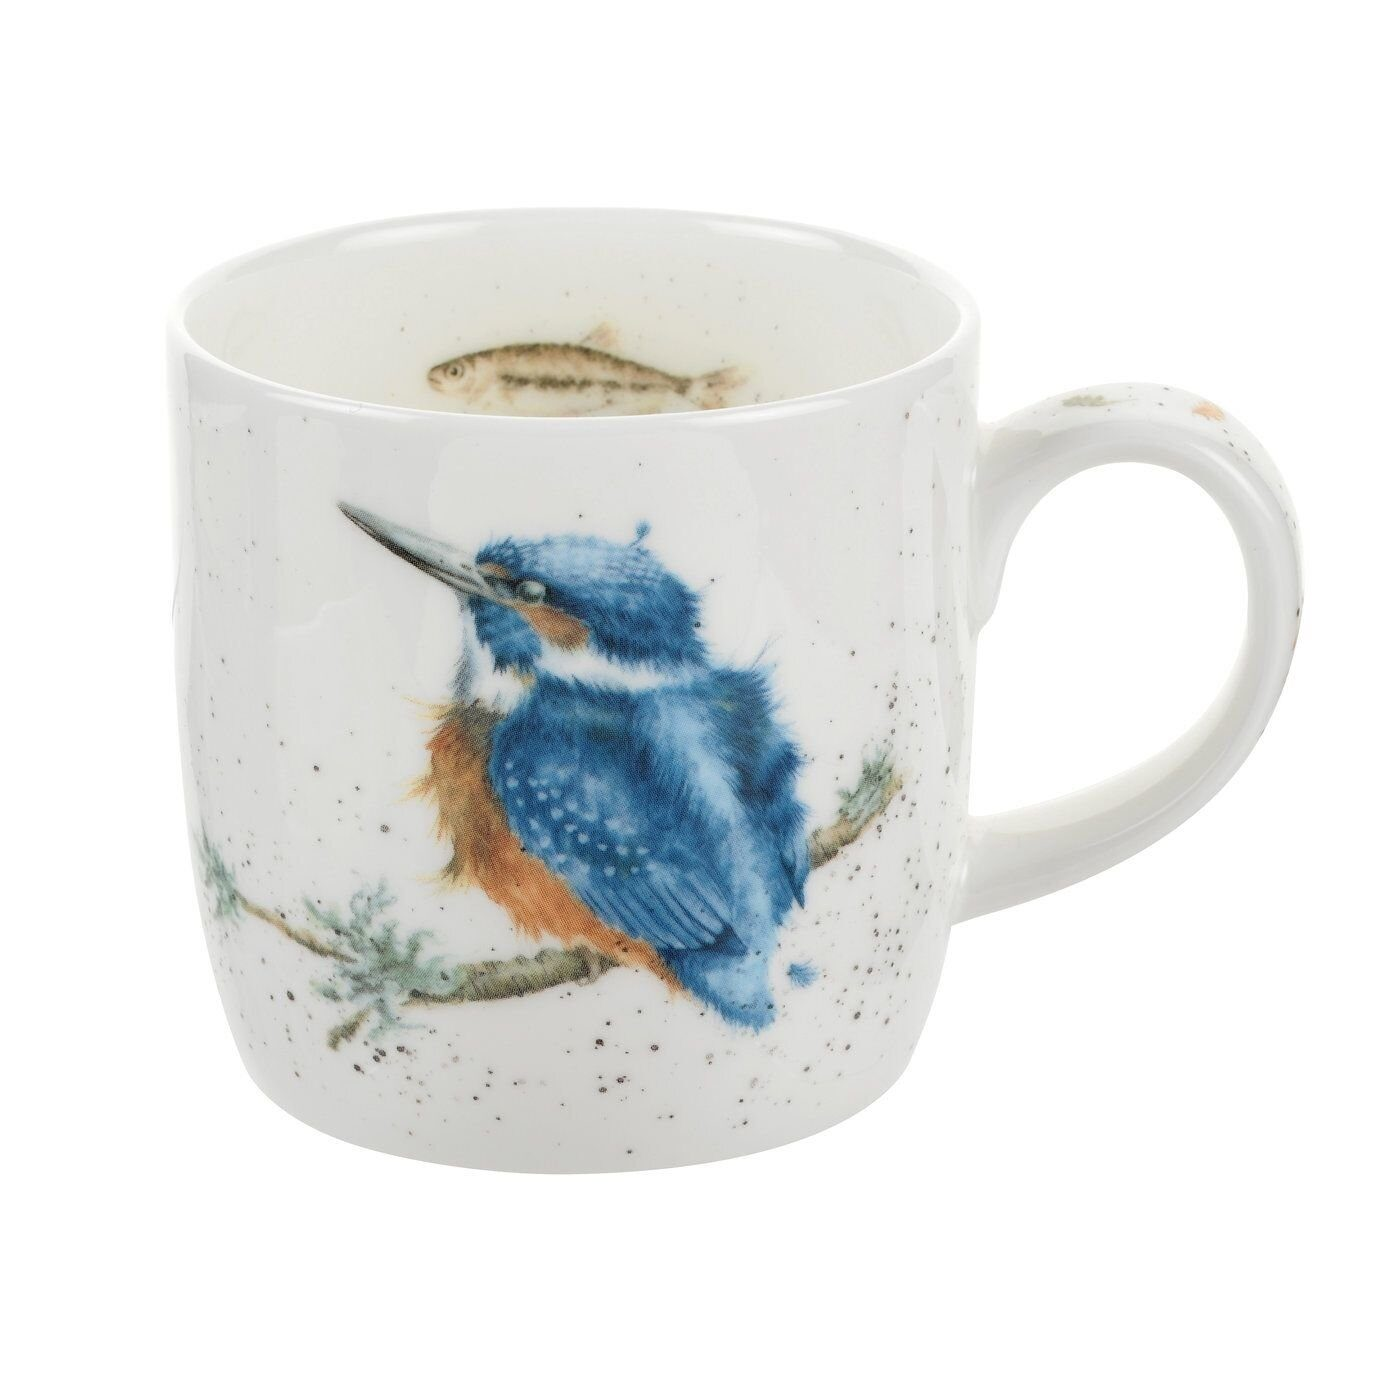 Royal Worcester Wrendale Designs King of the River Kingfisher Fine Bone China Mug 1);